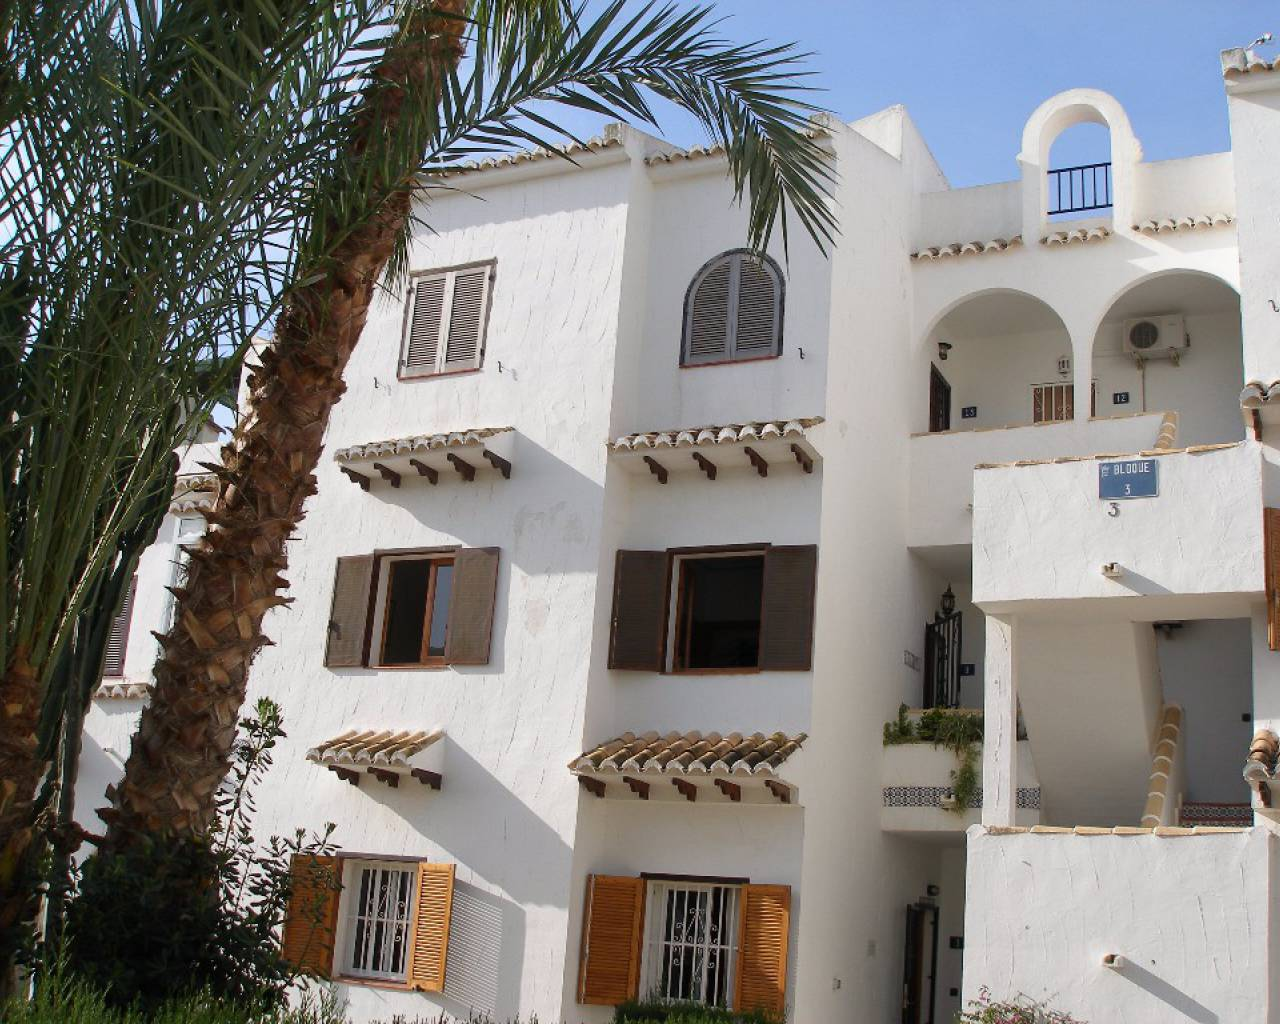 Resale - Wohnung - Alicante* NO USAR -  Ciudad Quesada